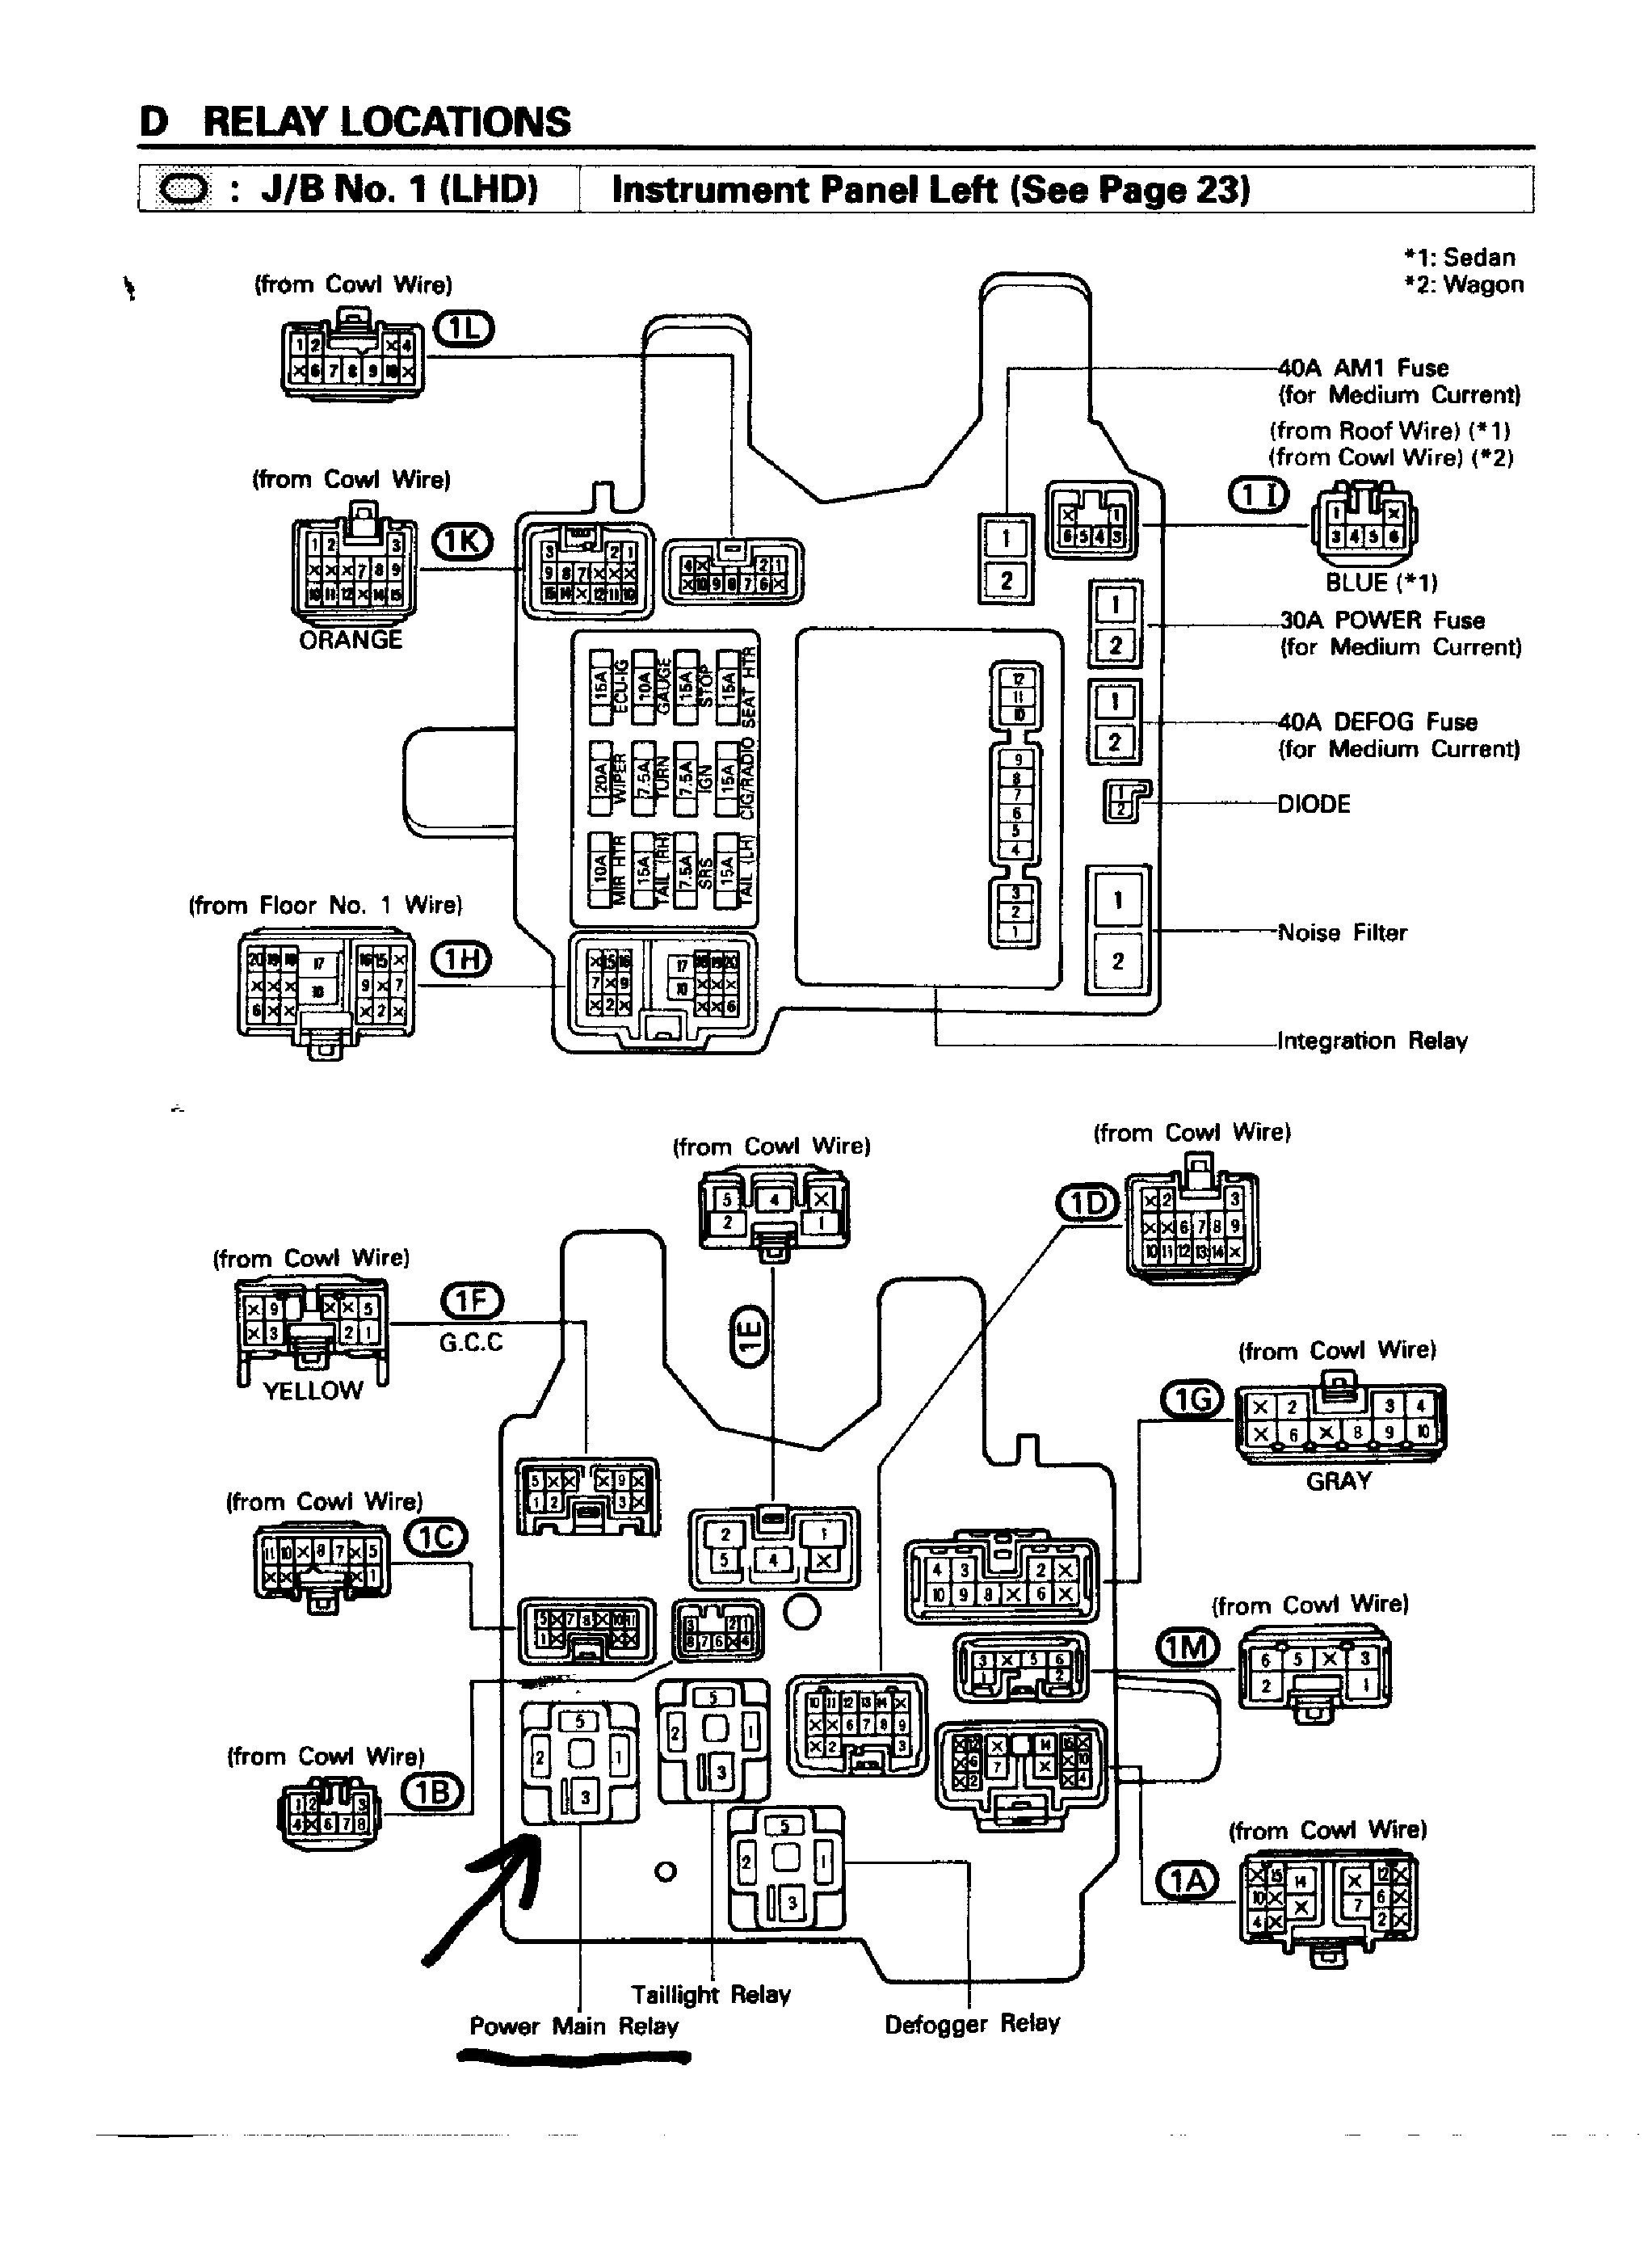 2011 Camry Electrical Wiring Pdf - DIY Wiring Diagrams •